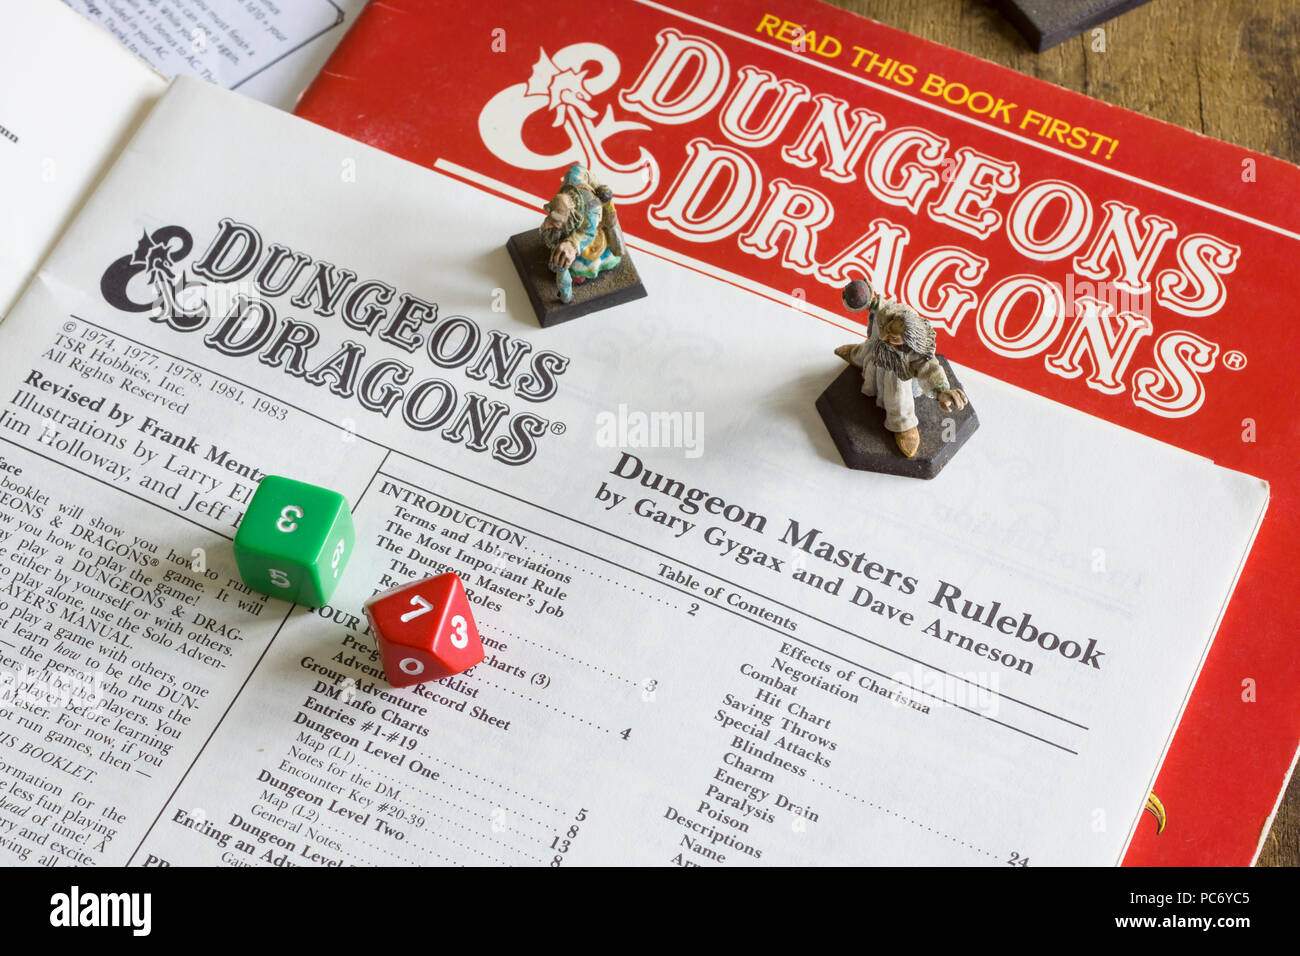 Dungeons and Dragons dungeon masters rule book published as part of a D&D game pack in 1983. The game was designed by Gary Gygax and Dave Arneson - Stock Image